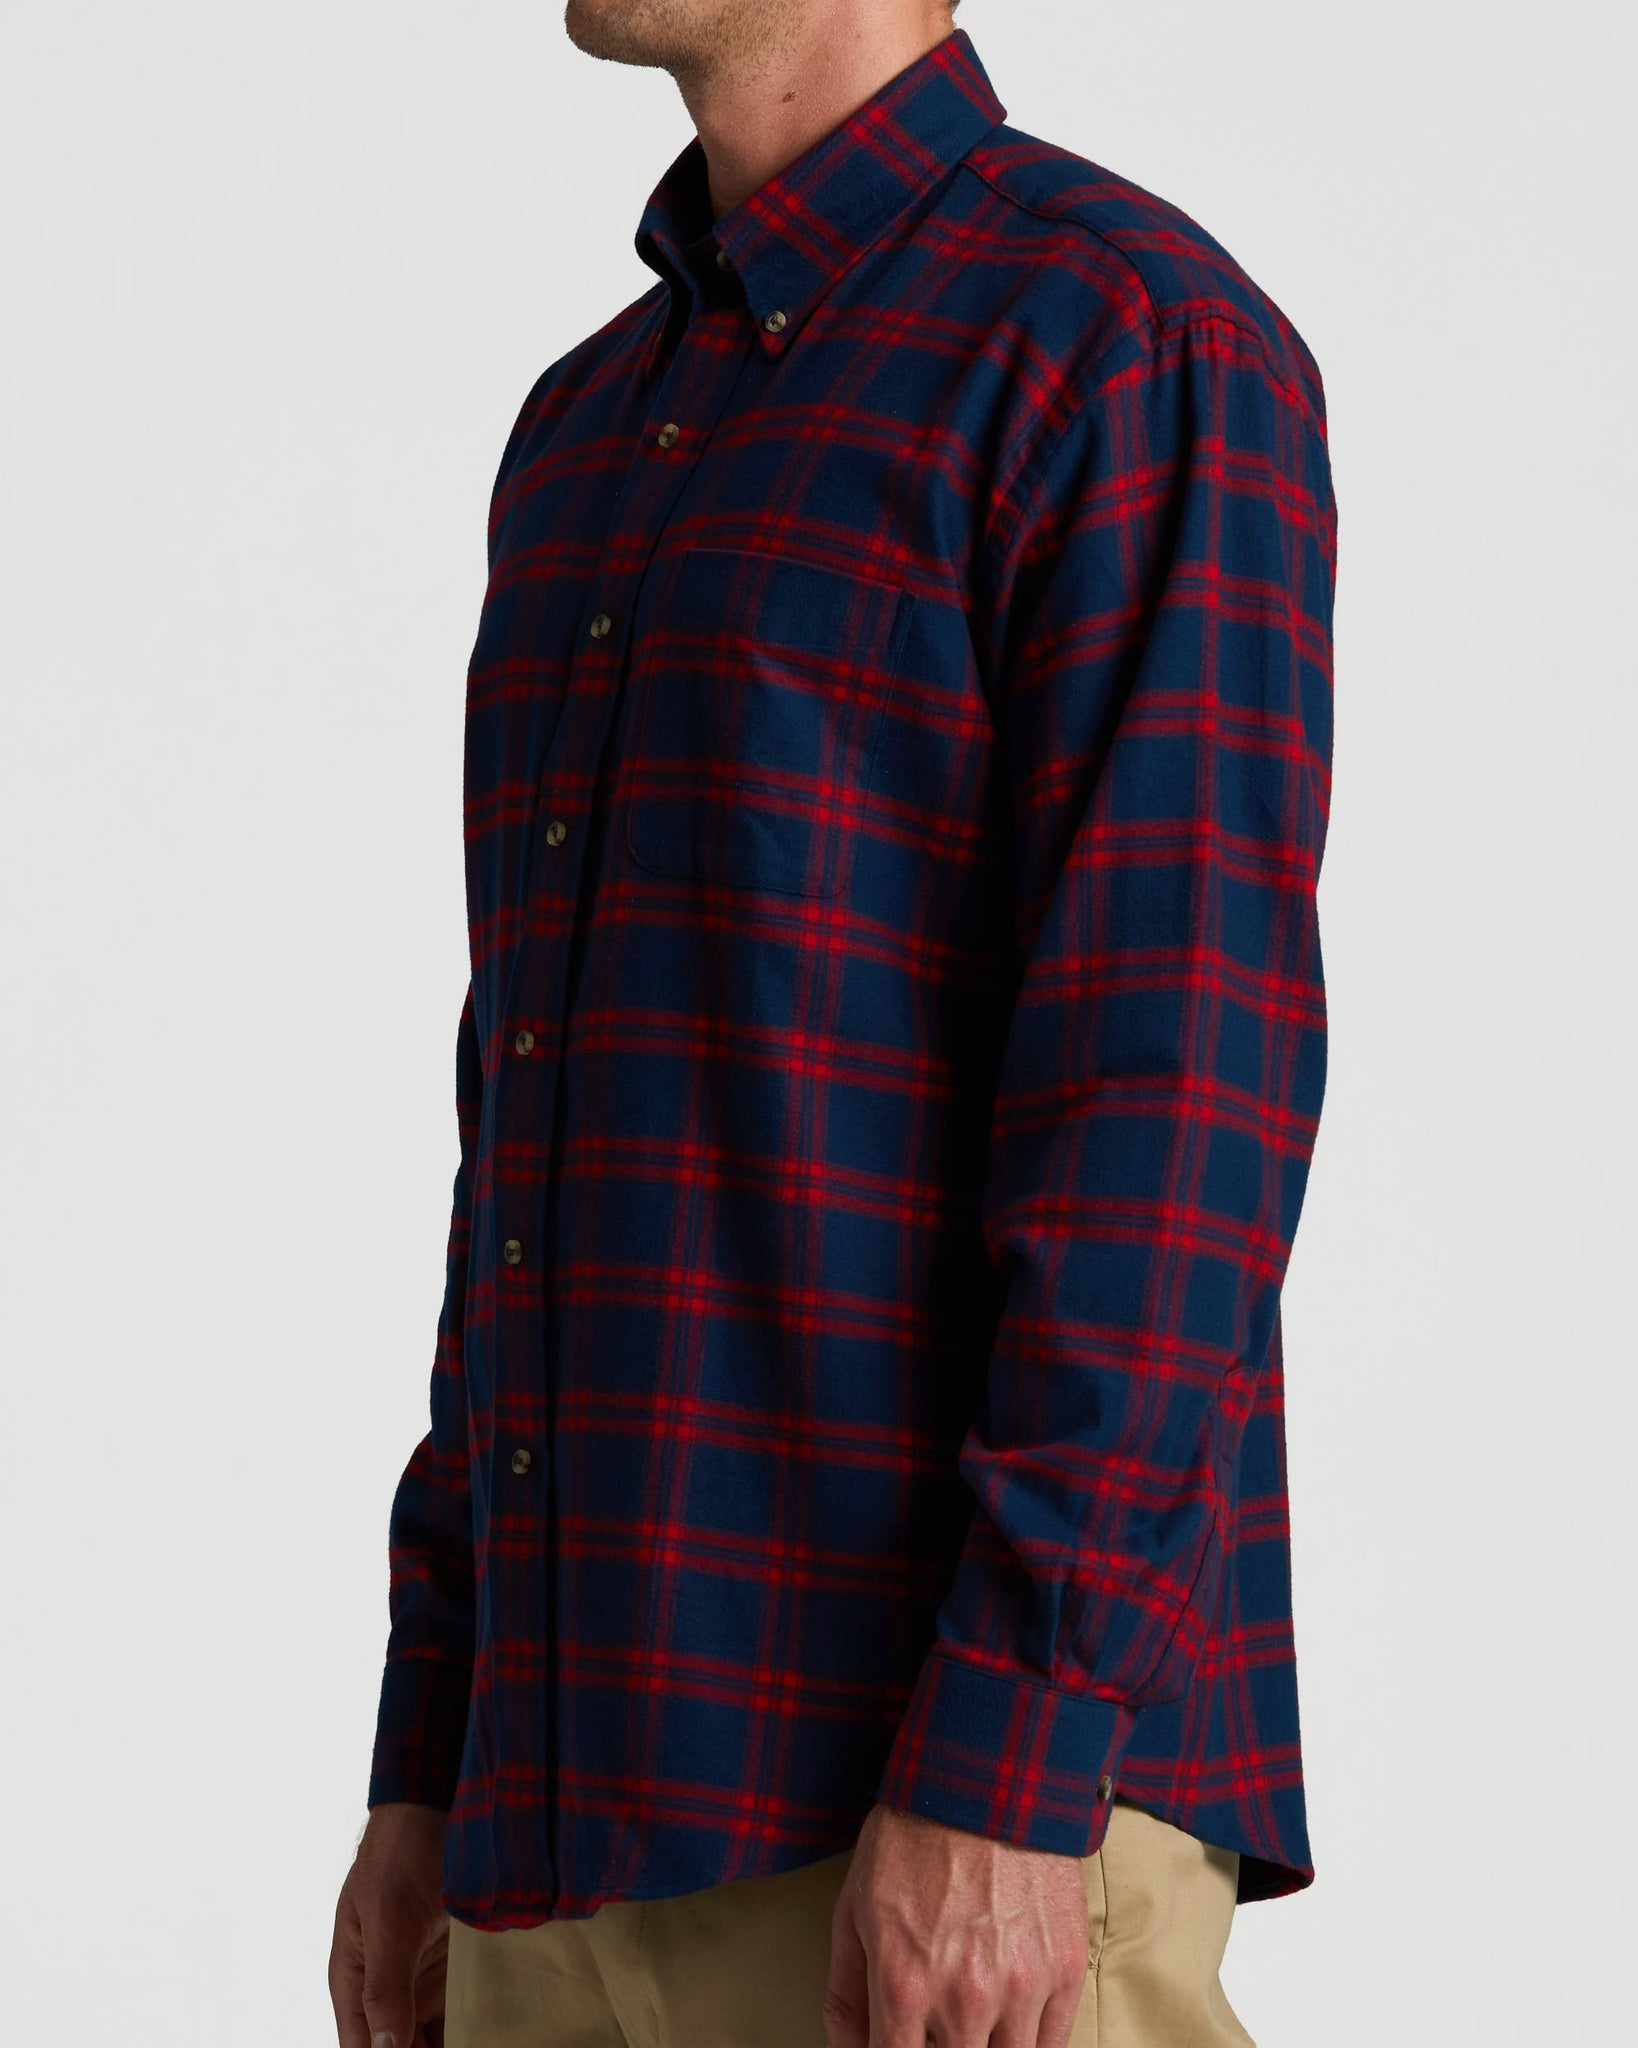 https://cdn.shopify.com/s/files/1/0249/6141/7252/files/Magna_Ready_-_Mens_-_Flannel_-_Blue_Red-fade.mp4?4372